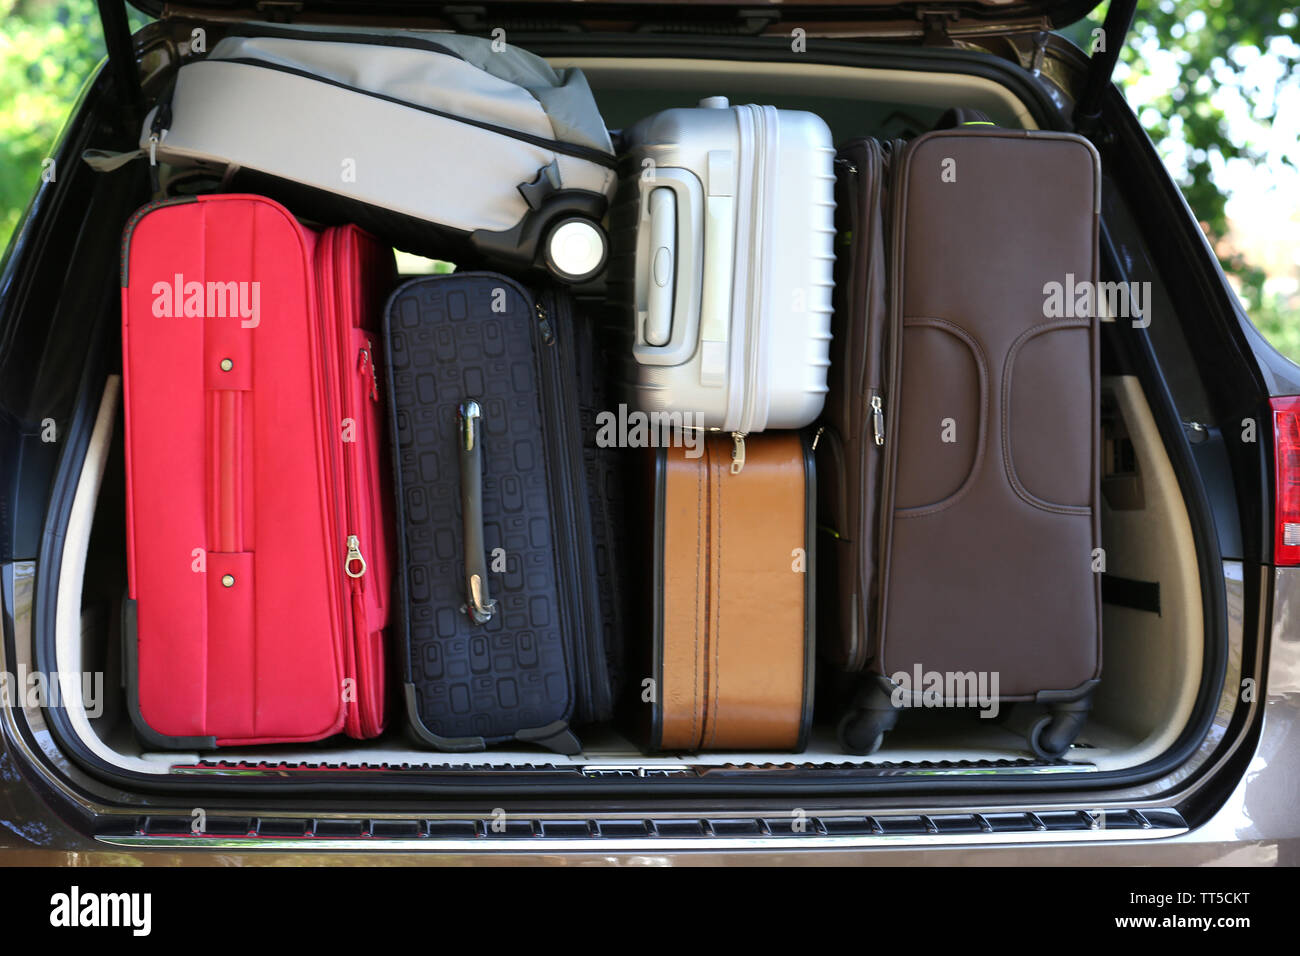 Suitcases and bags in trunk of car ready to depart for holidays - Stock Image